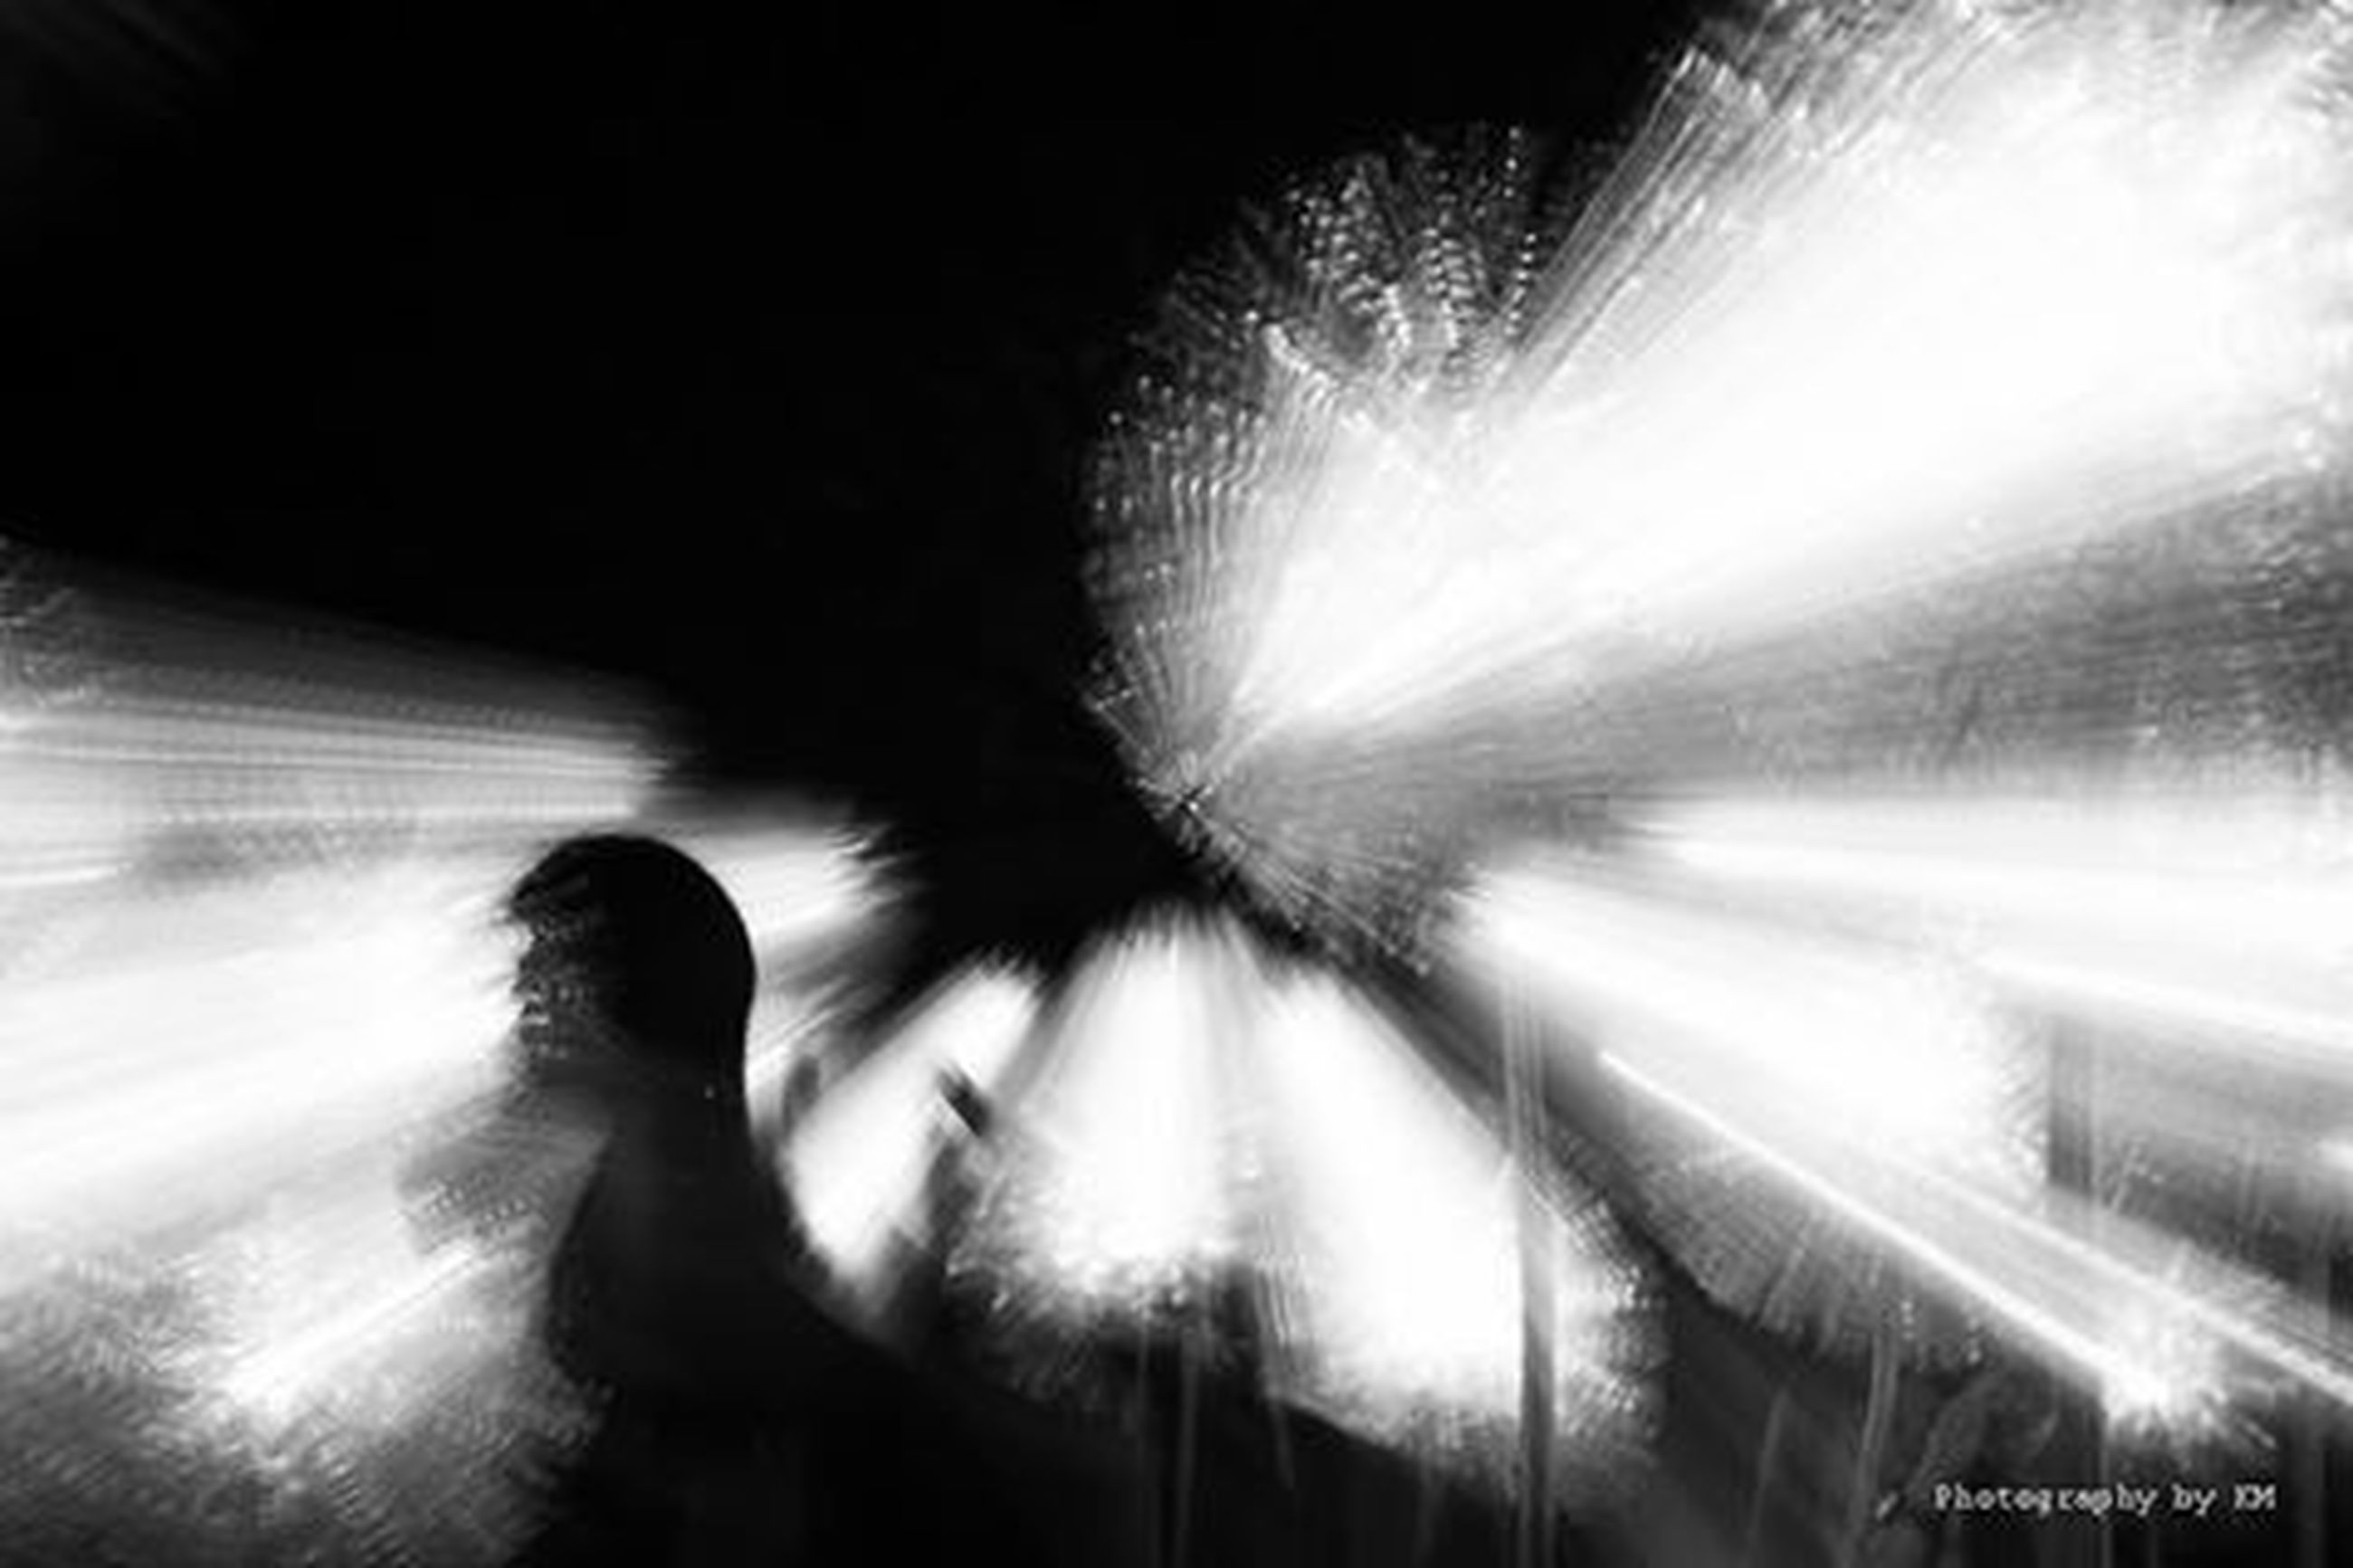 illuminated, night, indoors, blurred motion, motion, dark, glowing, light - natural phenomenon, shadow, light, unrecognizable person, silhouette, lighting equipment, long exposure, low angle view, sunlight, high angle view